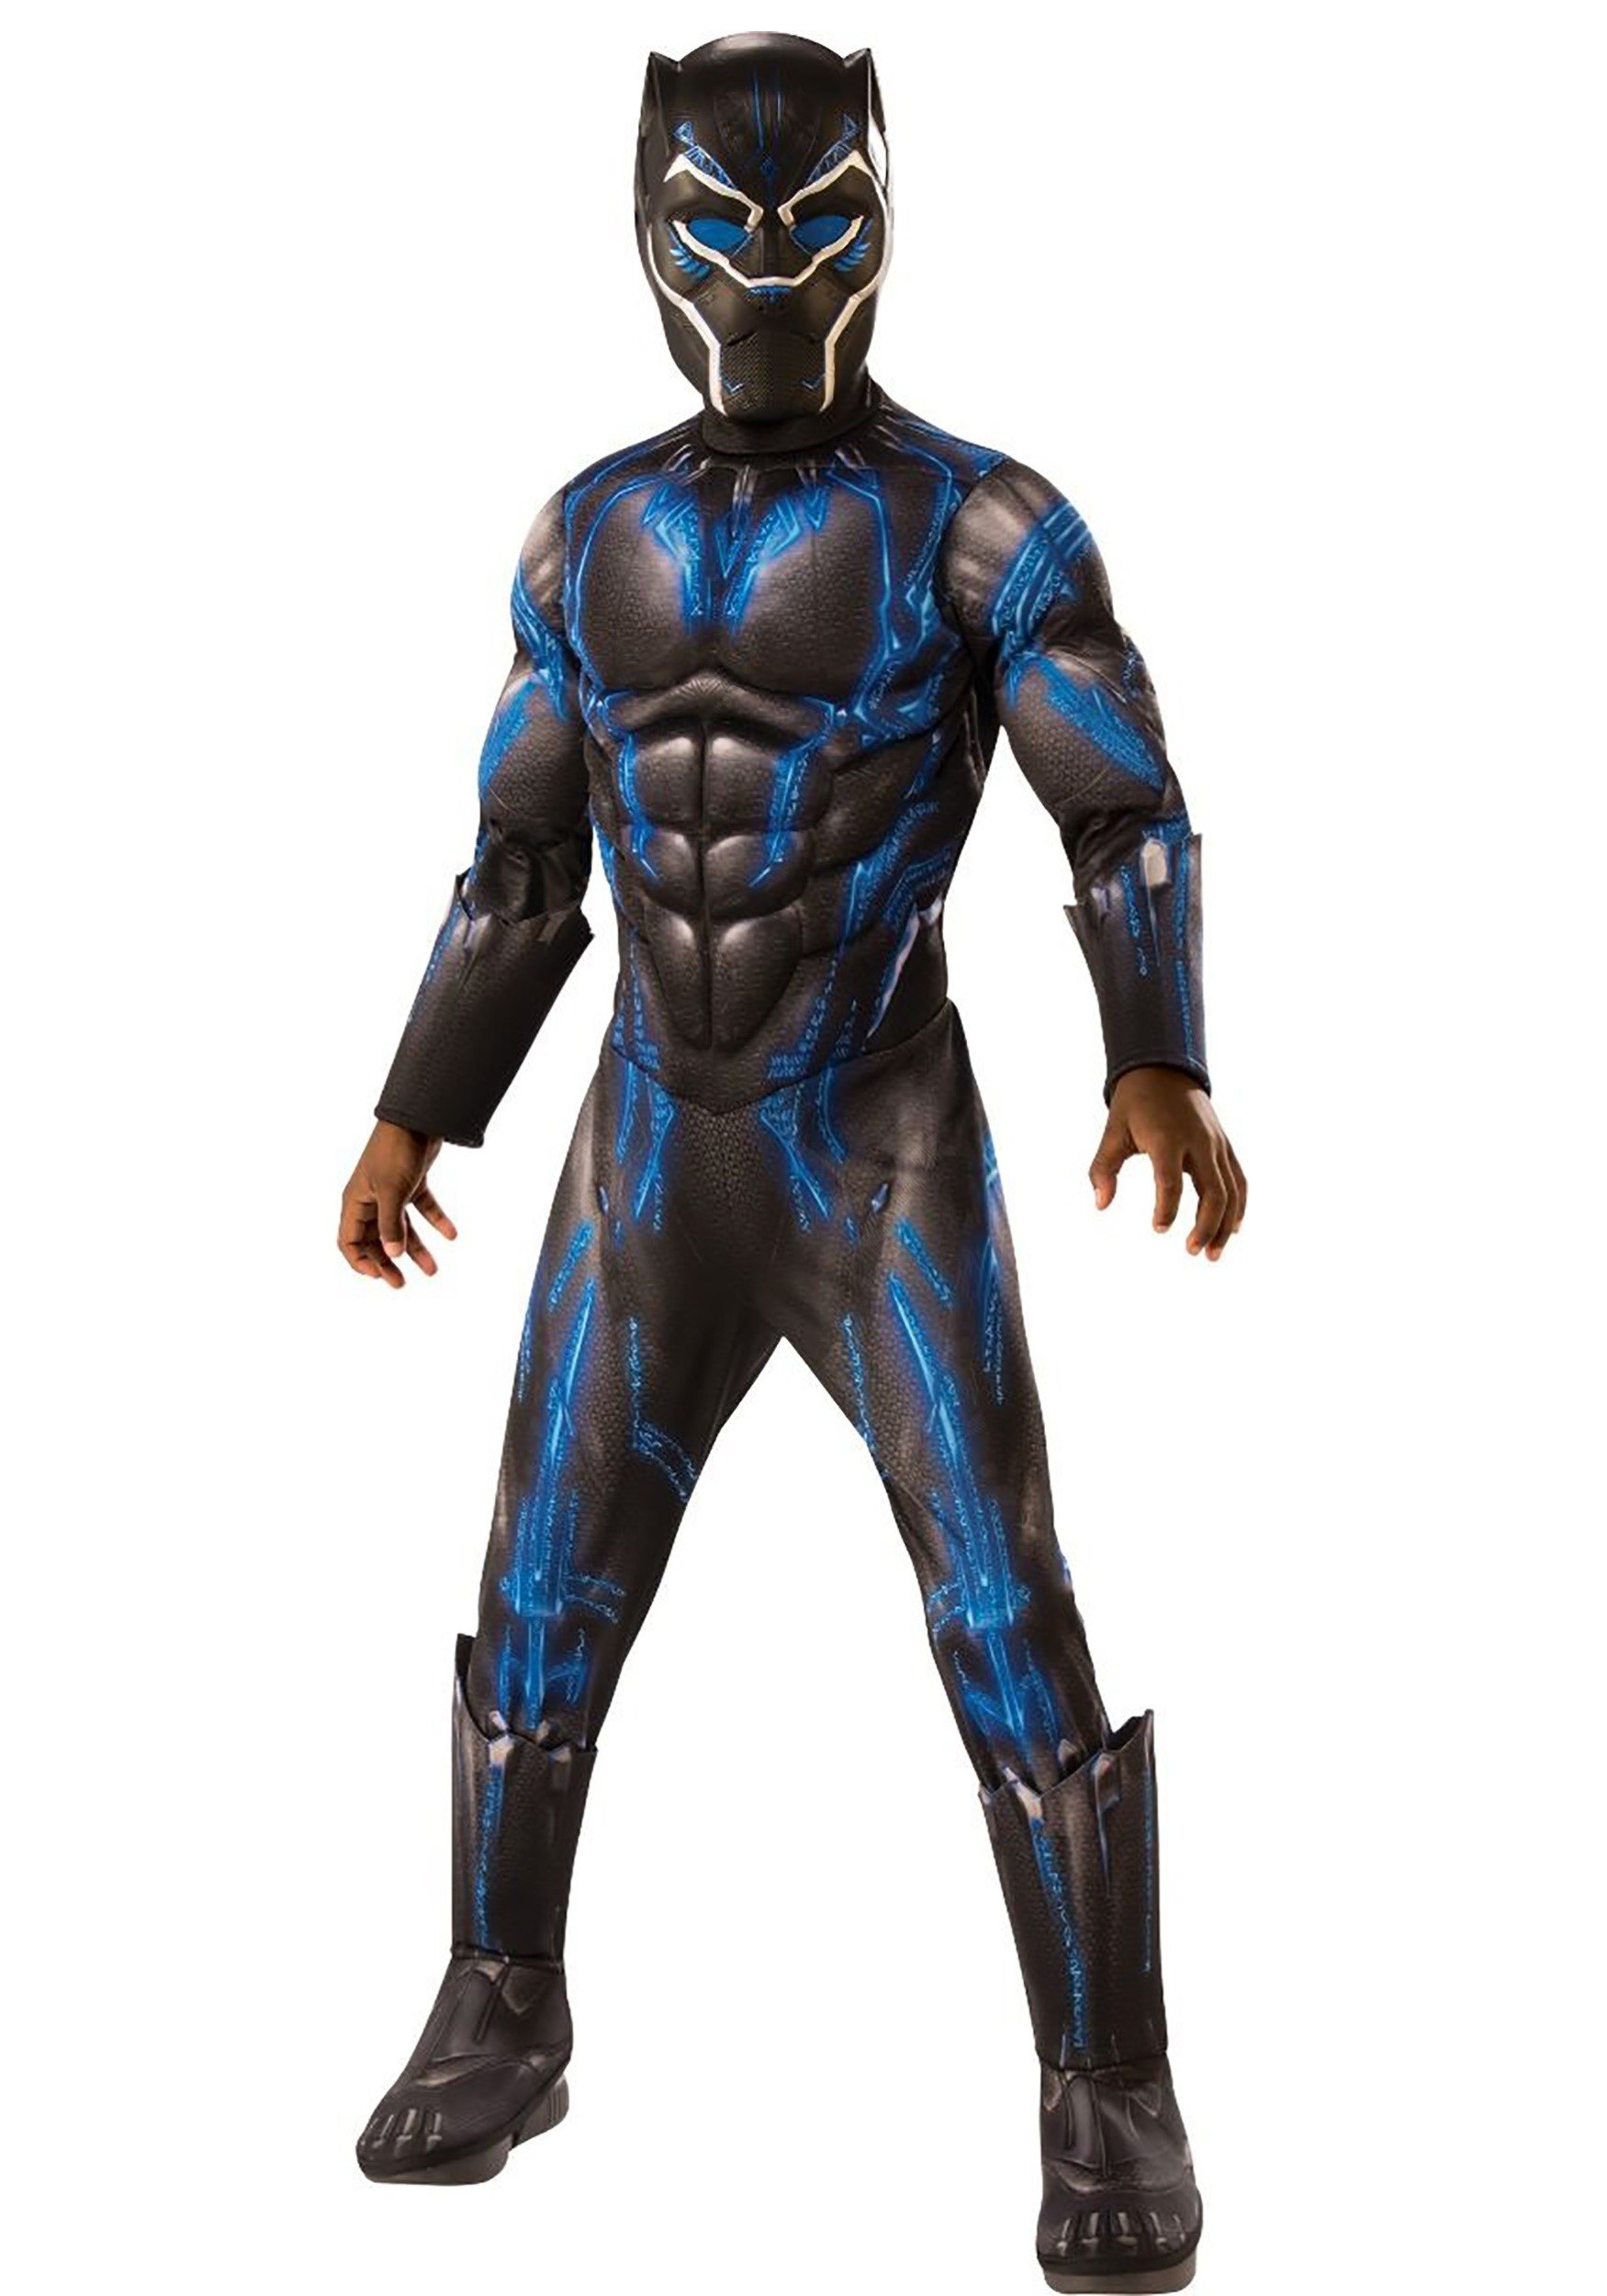 Black Panther Kid's Deluxe Battle Suit Costume